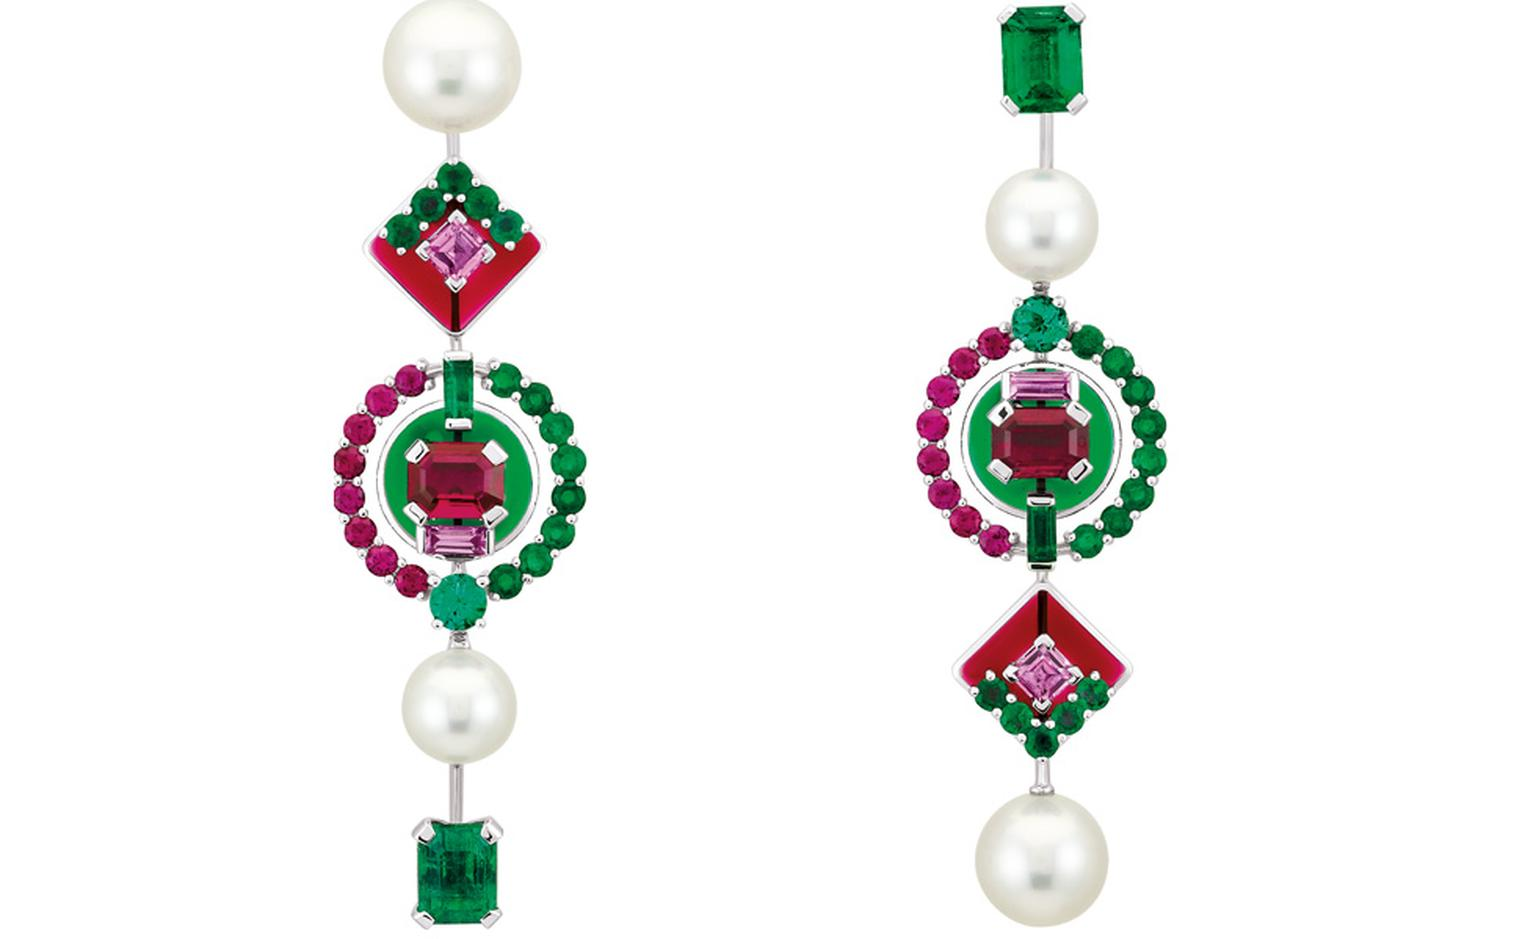 Chanel's Mosaïque design brings the rich hues of emeralds, rubies, pearls and pink sapphires into a rich tapestry of colour from the Secrets D'Orient collection. POA